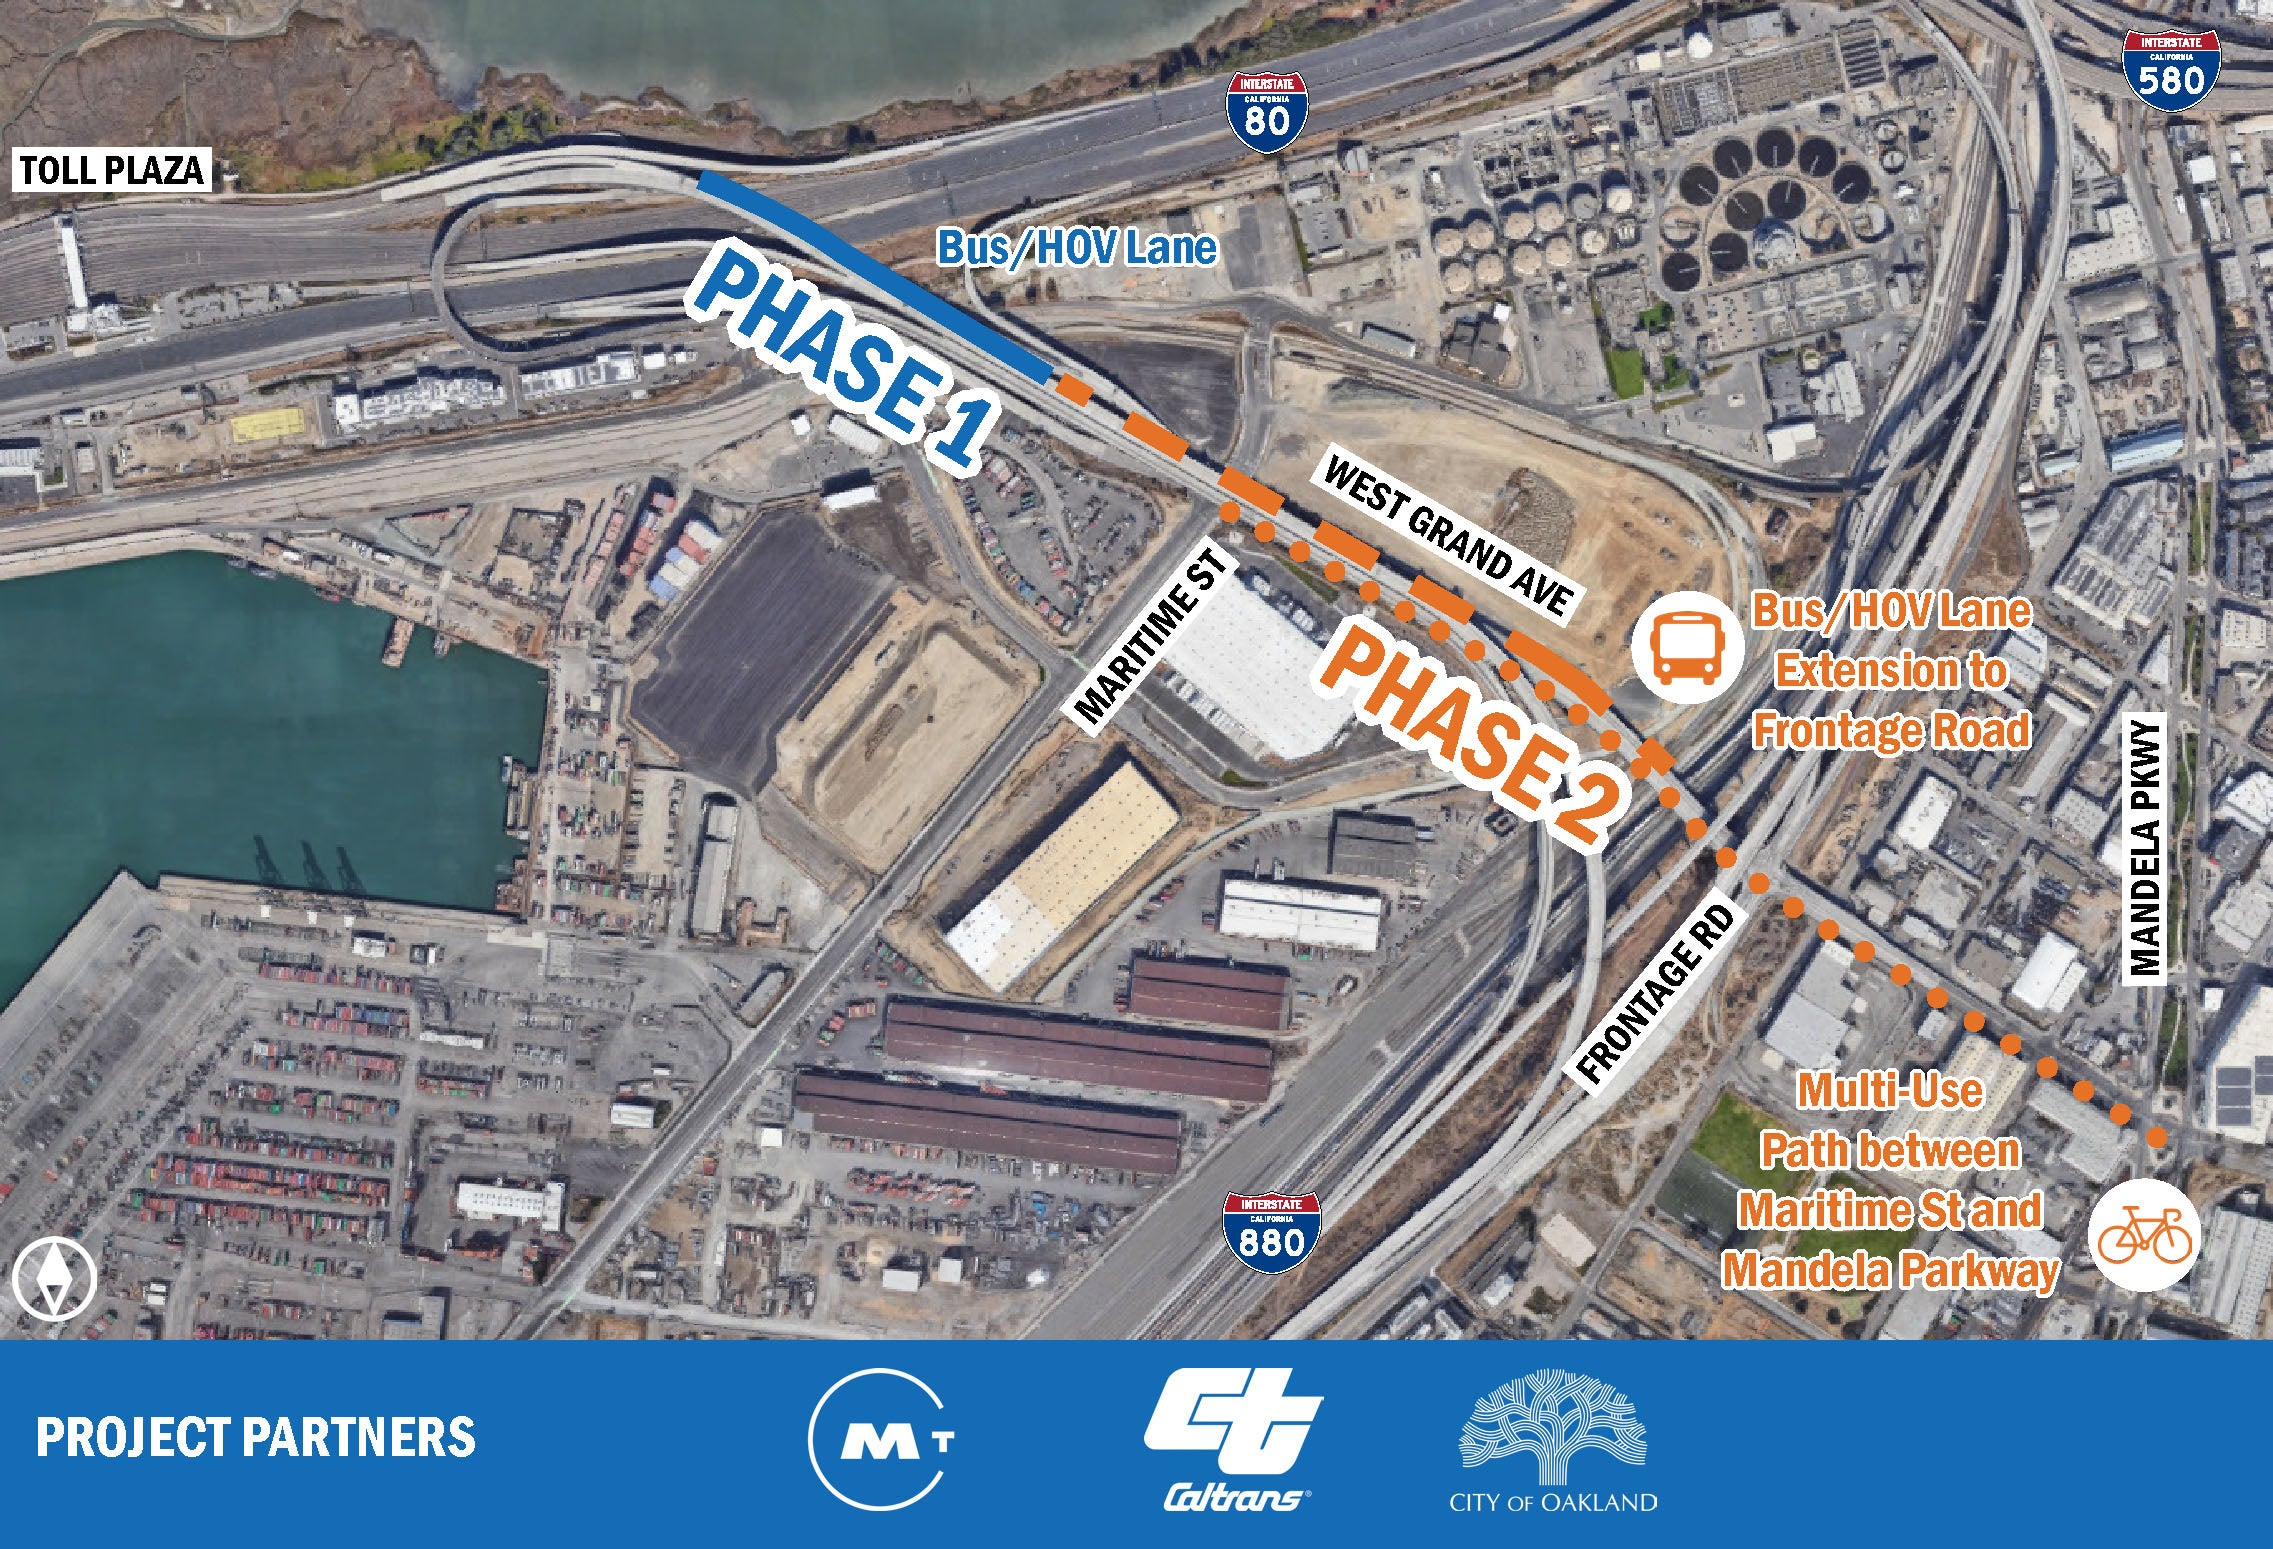 West Grand Ave. Bus/HOV Lane Extension project map